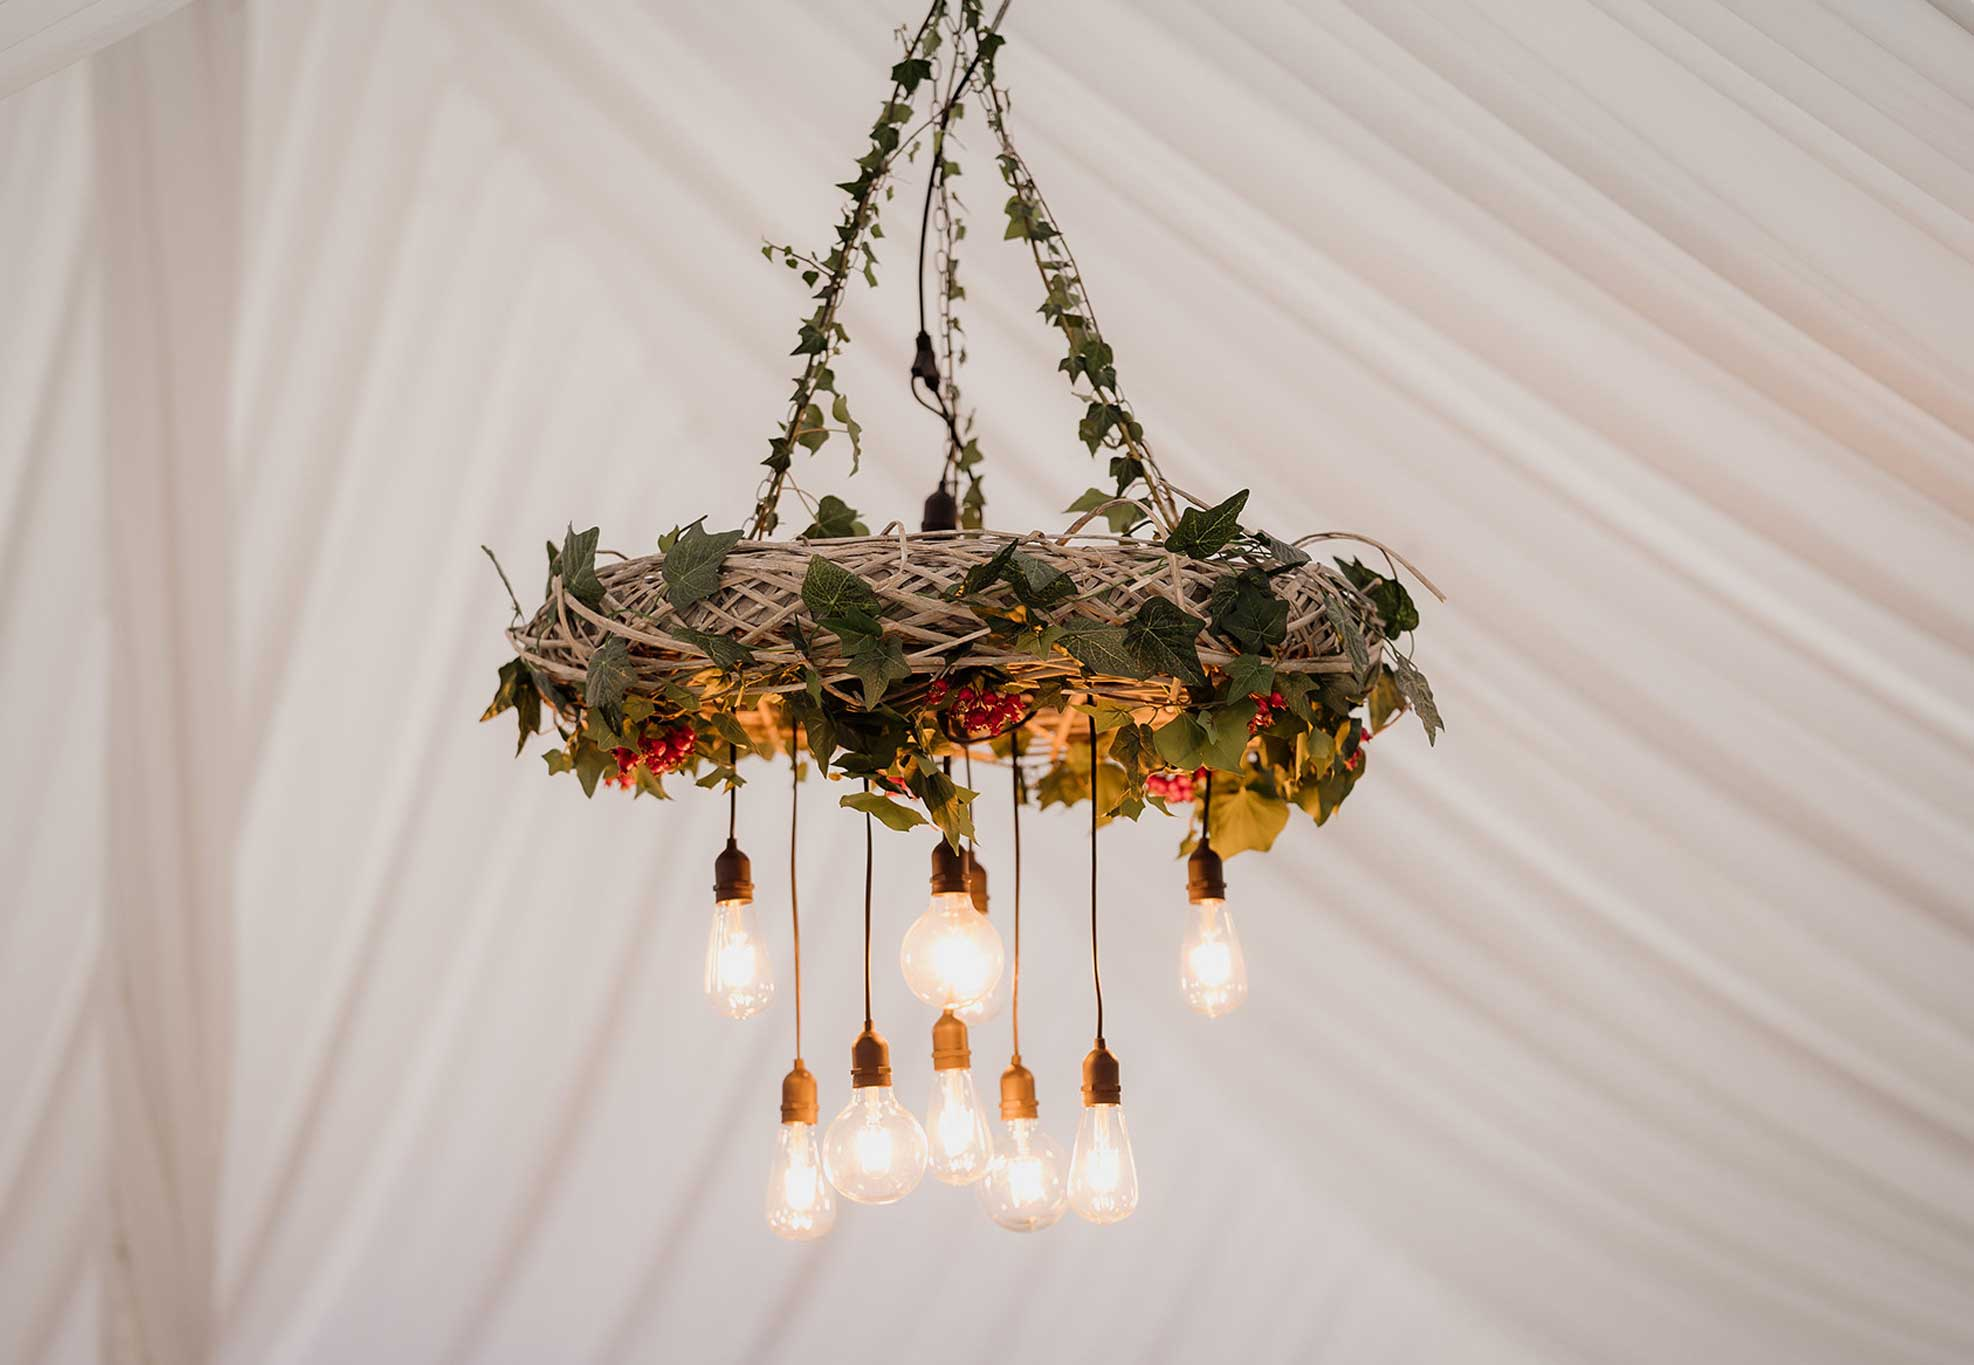 silk-estate-marquee-weddings-and-events-styling-and-hire-lightting-festoon-3